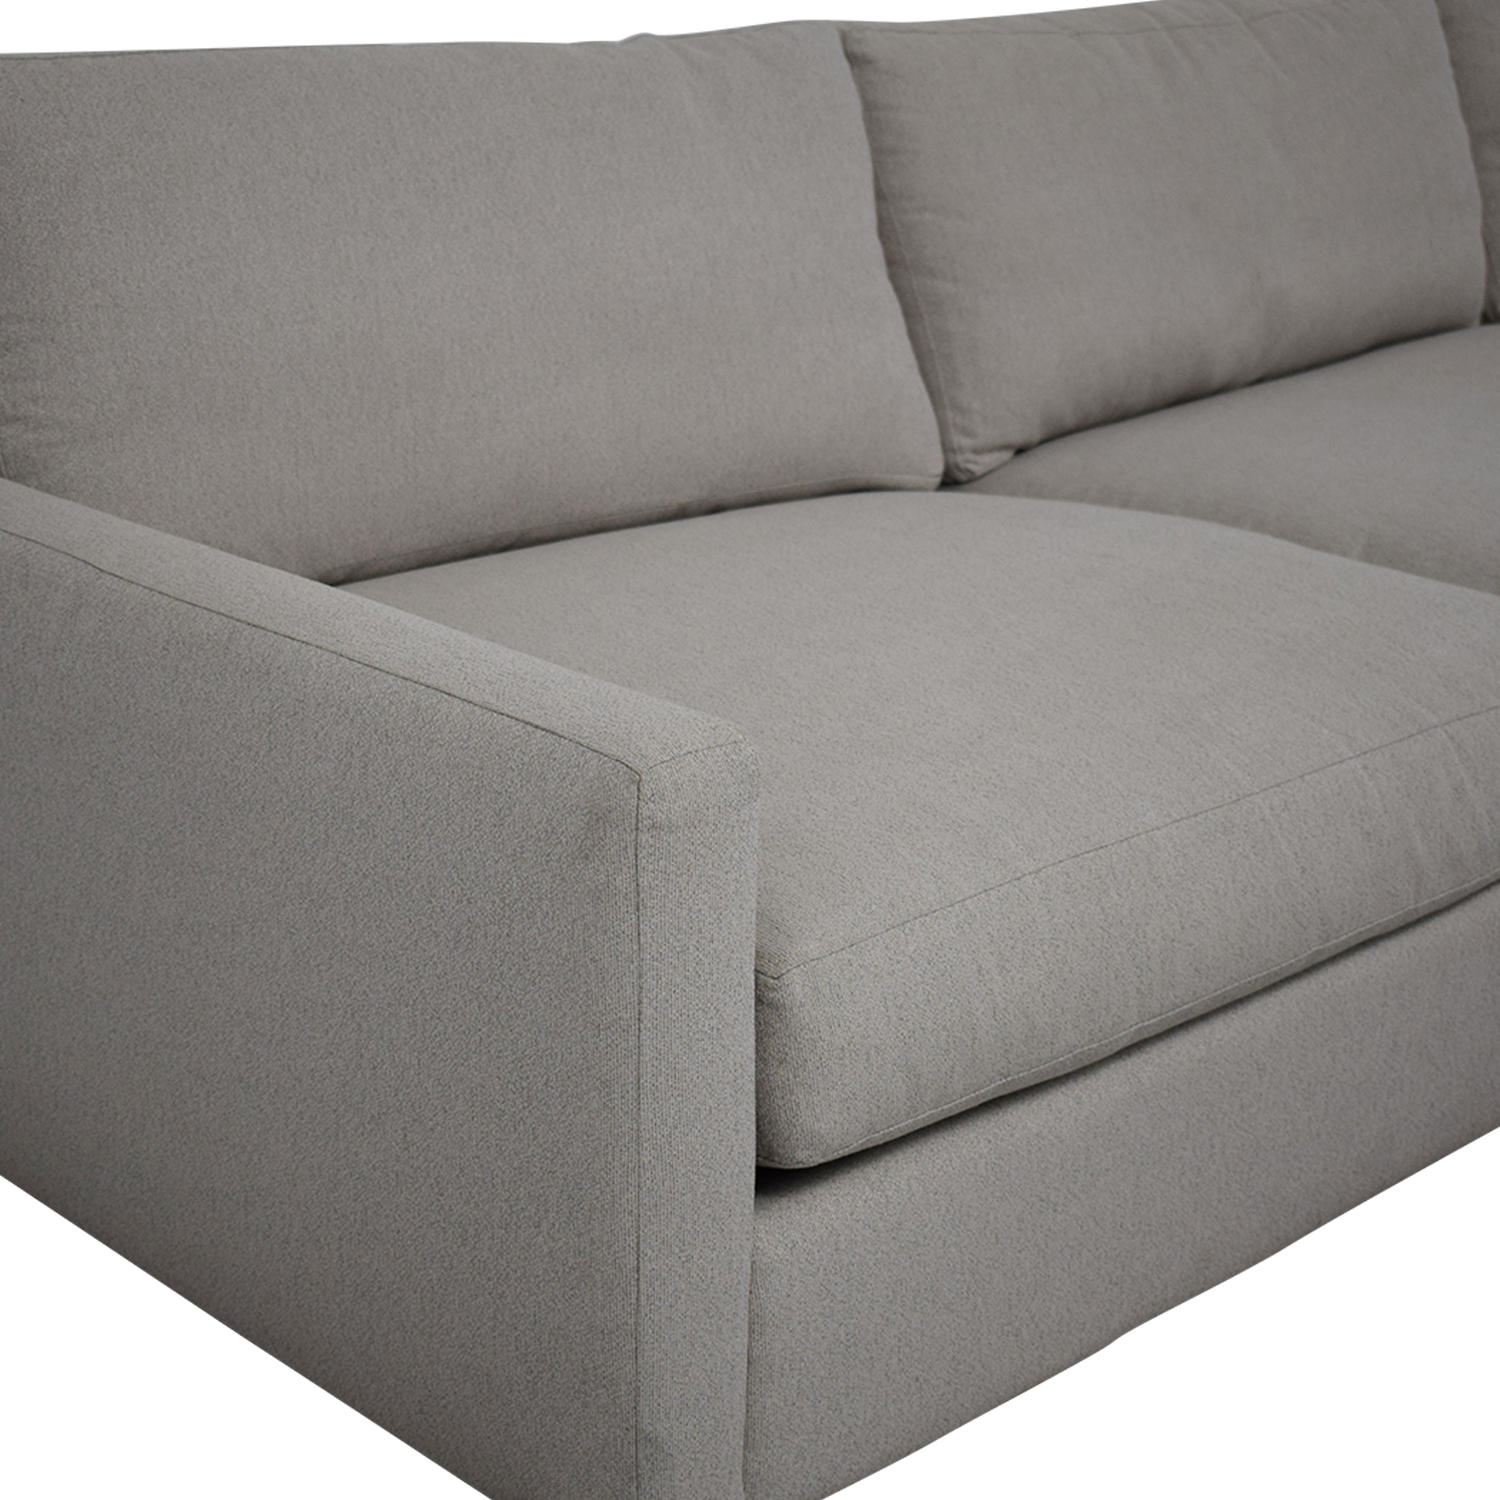 Room & Board Room & Board Linger Sofa with Chaise price